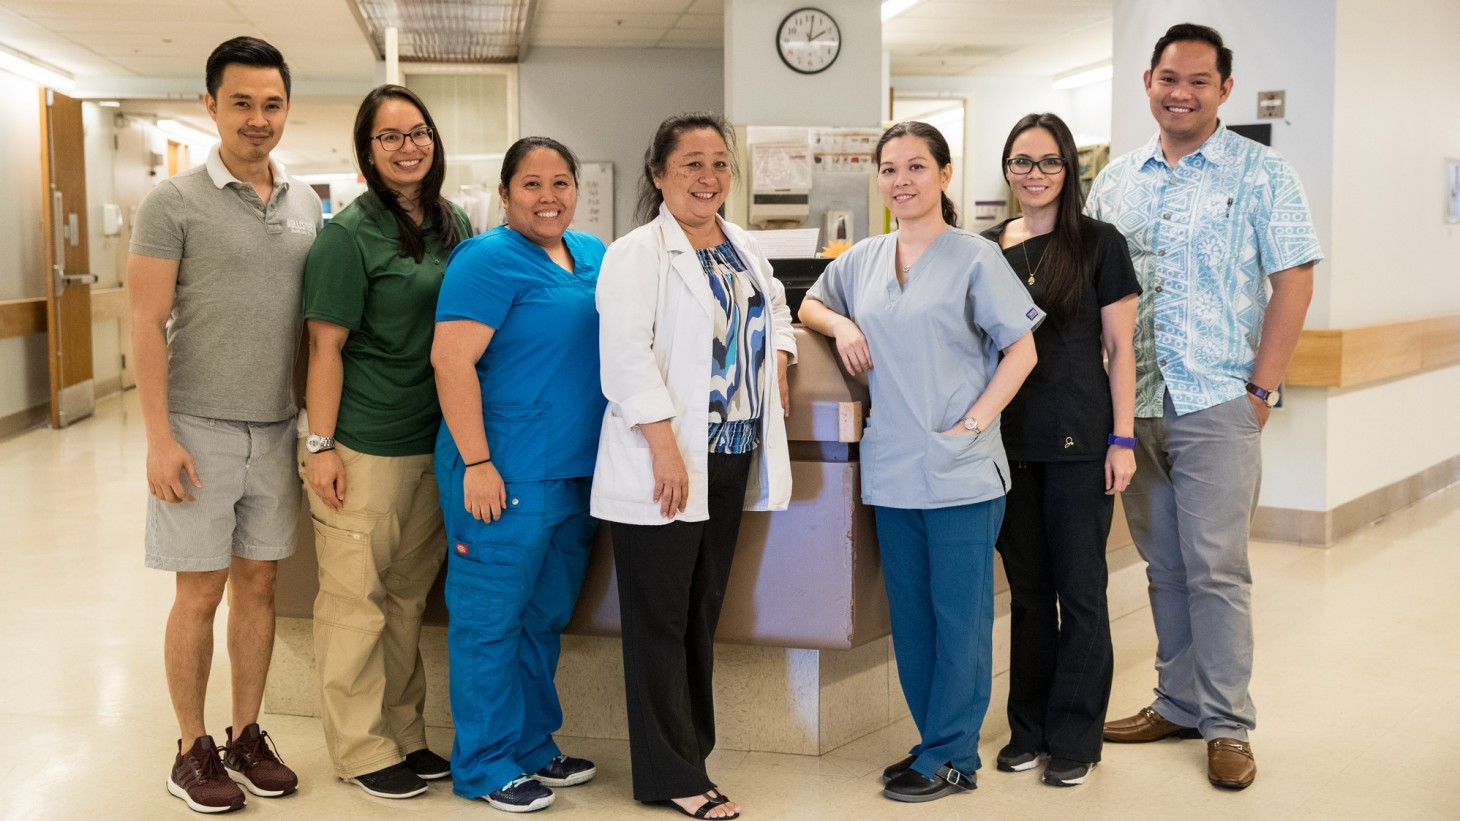 group photo of health care workers